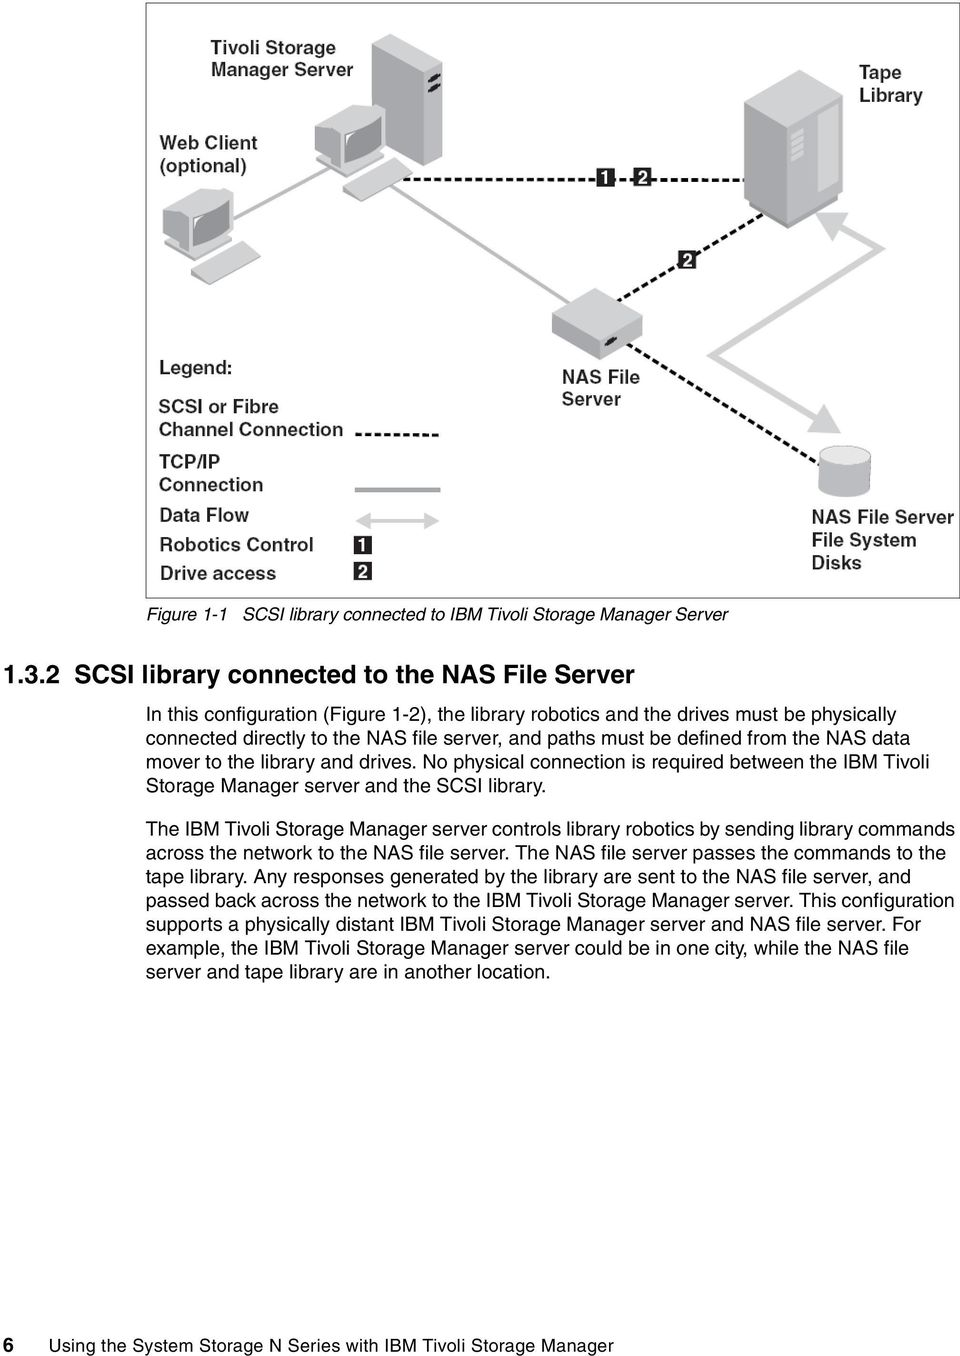 defined from the NAS data mover to the library and drives. No physical connection is required between the IBM Tivoli Storage Manager server and the SCSI library.